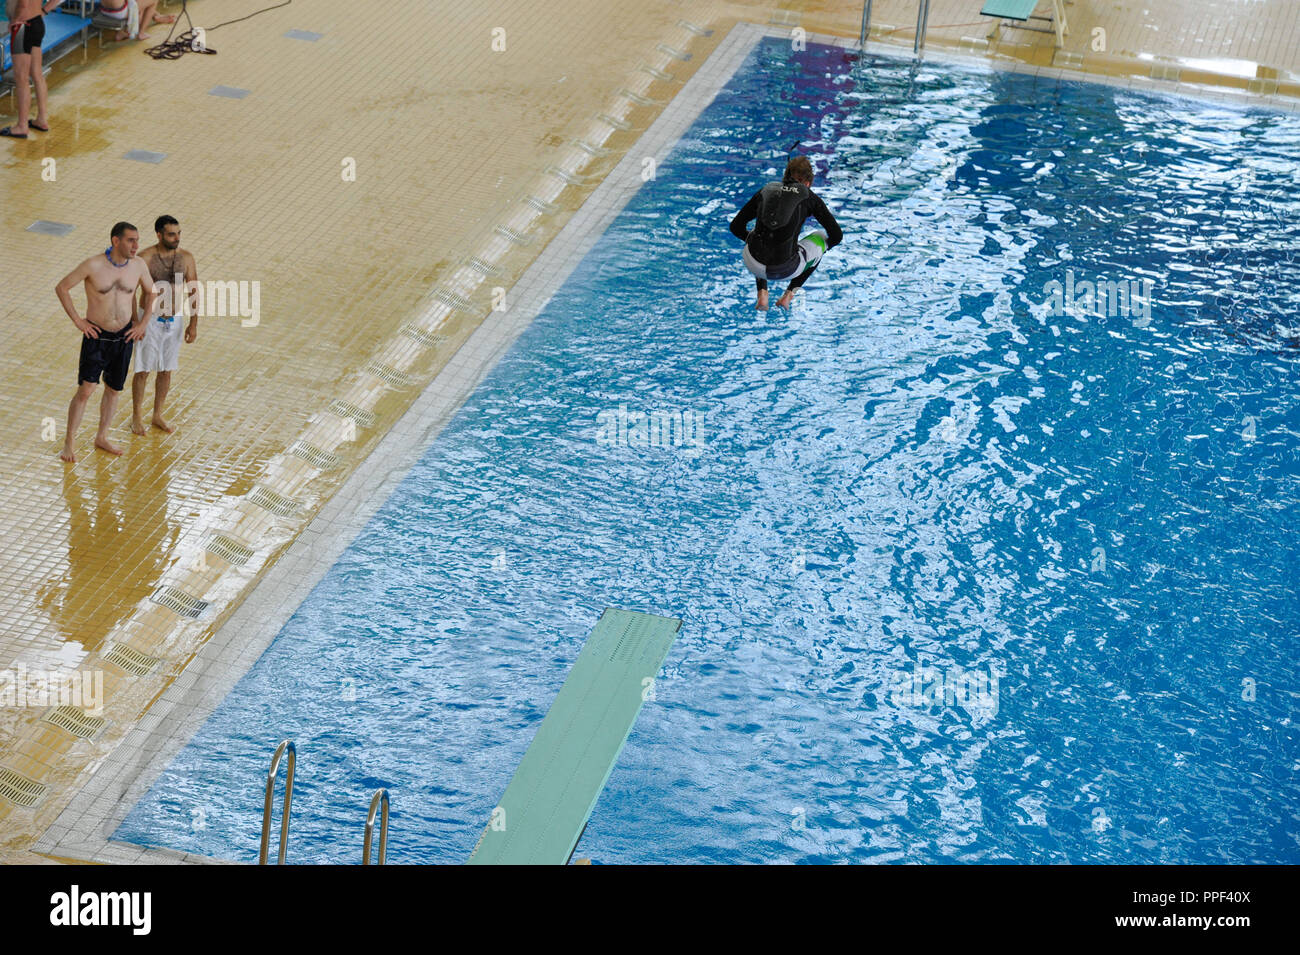 The Department of Sports of the City of Munich and the M-Baeder of Stadtwerke Muenchen organize for the first time the Munich Watersports Festival. In the picture, diver in the Olympic swimming pool. - Stock Image